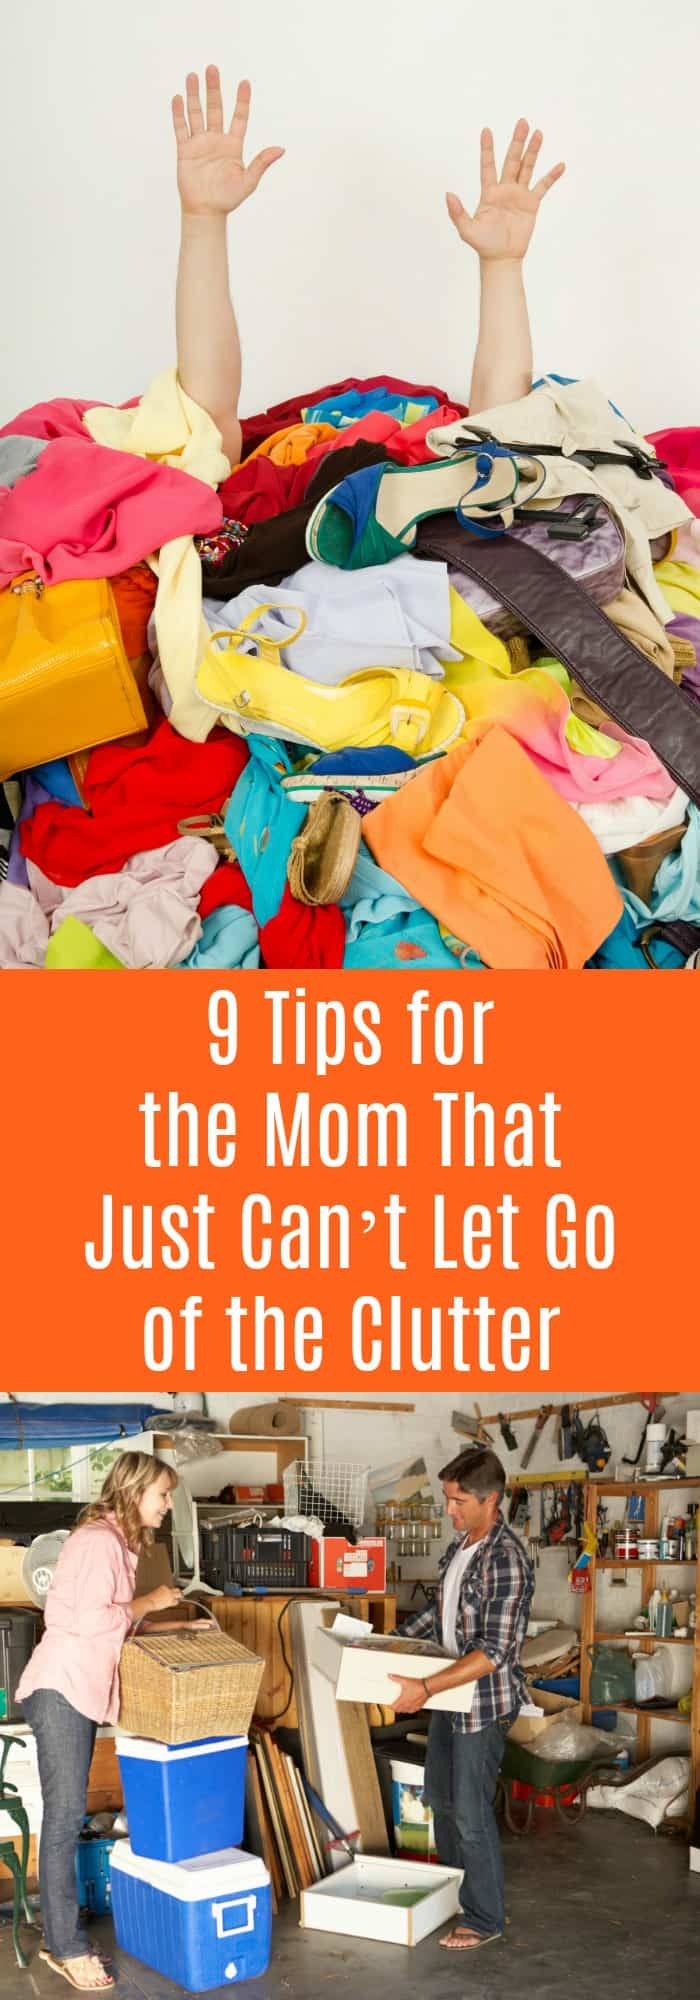 Organization--9 Tips for the Mom That Just Can't Let Go of the Clutter--The Organized Mom